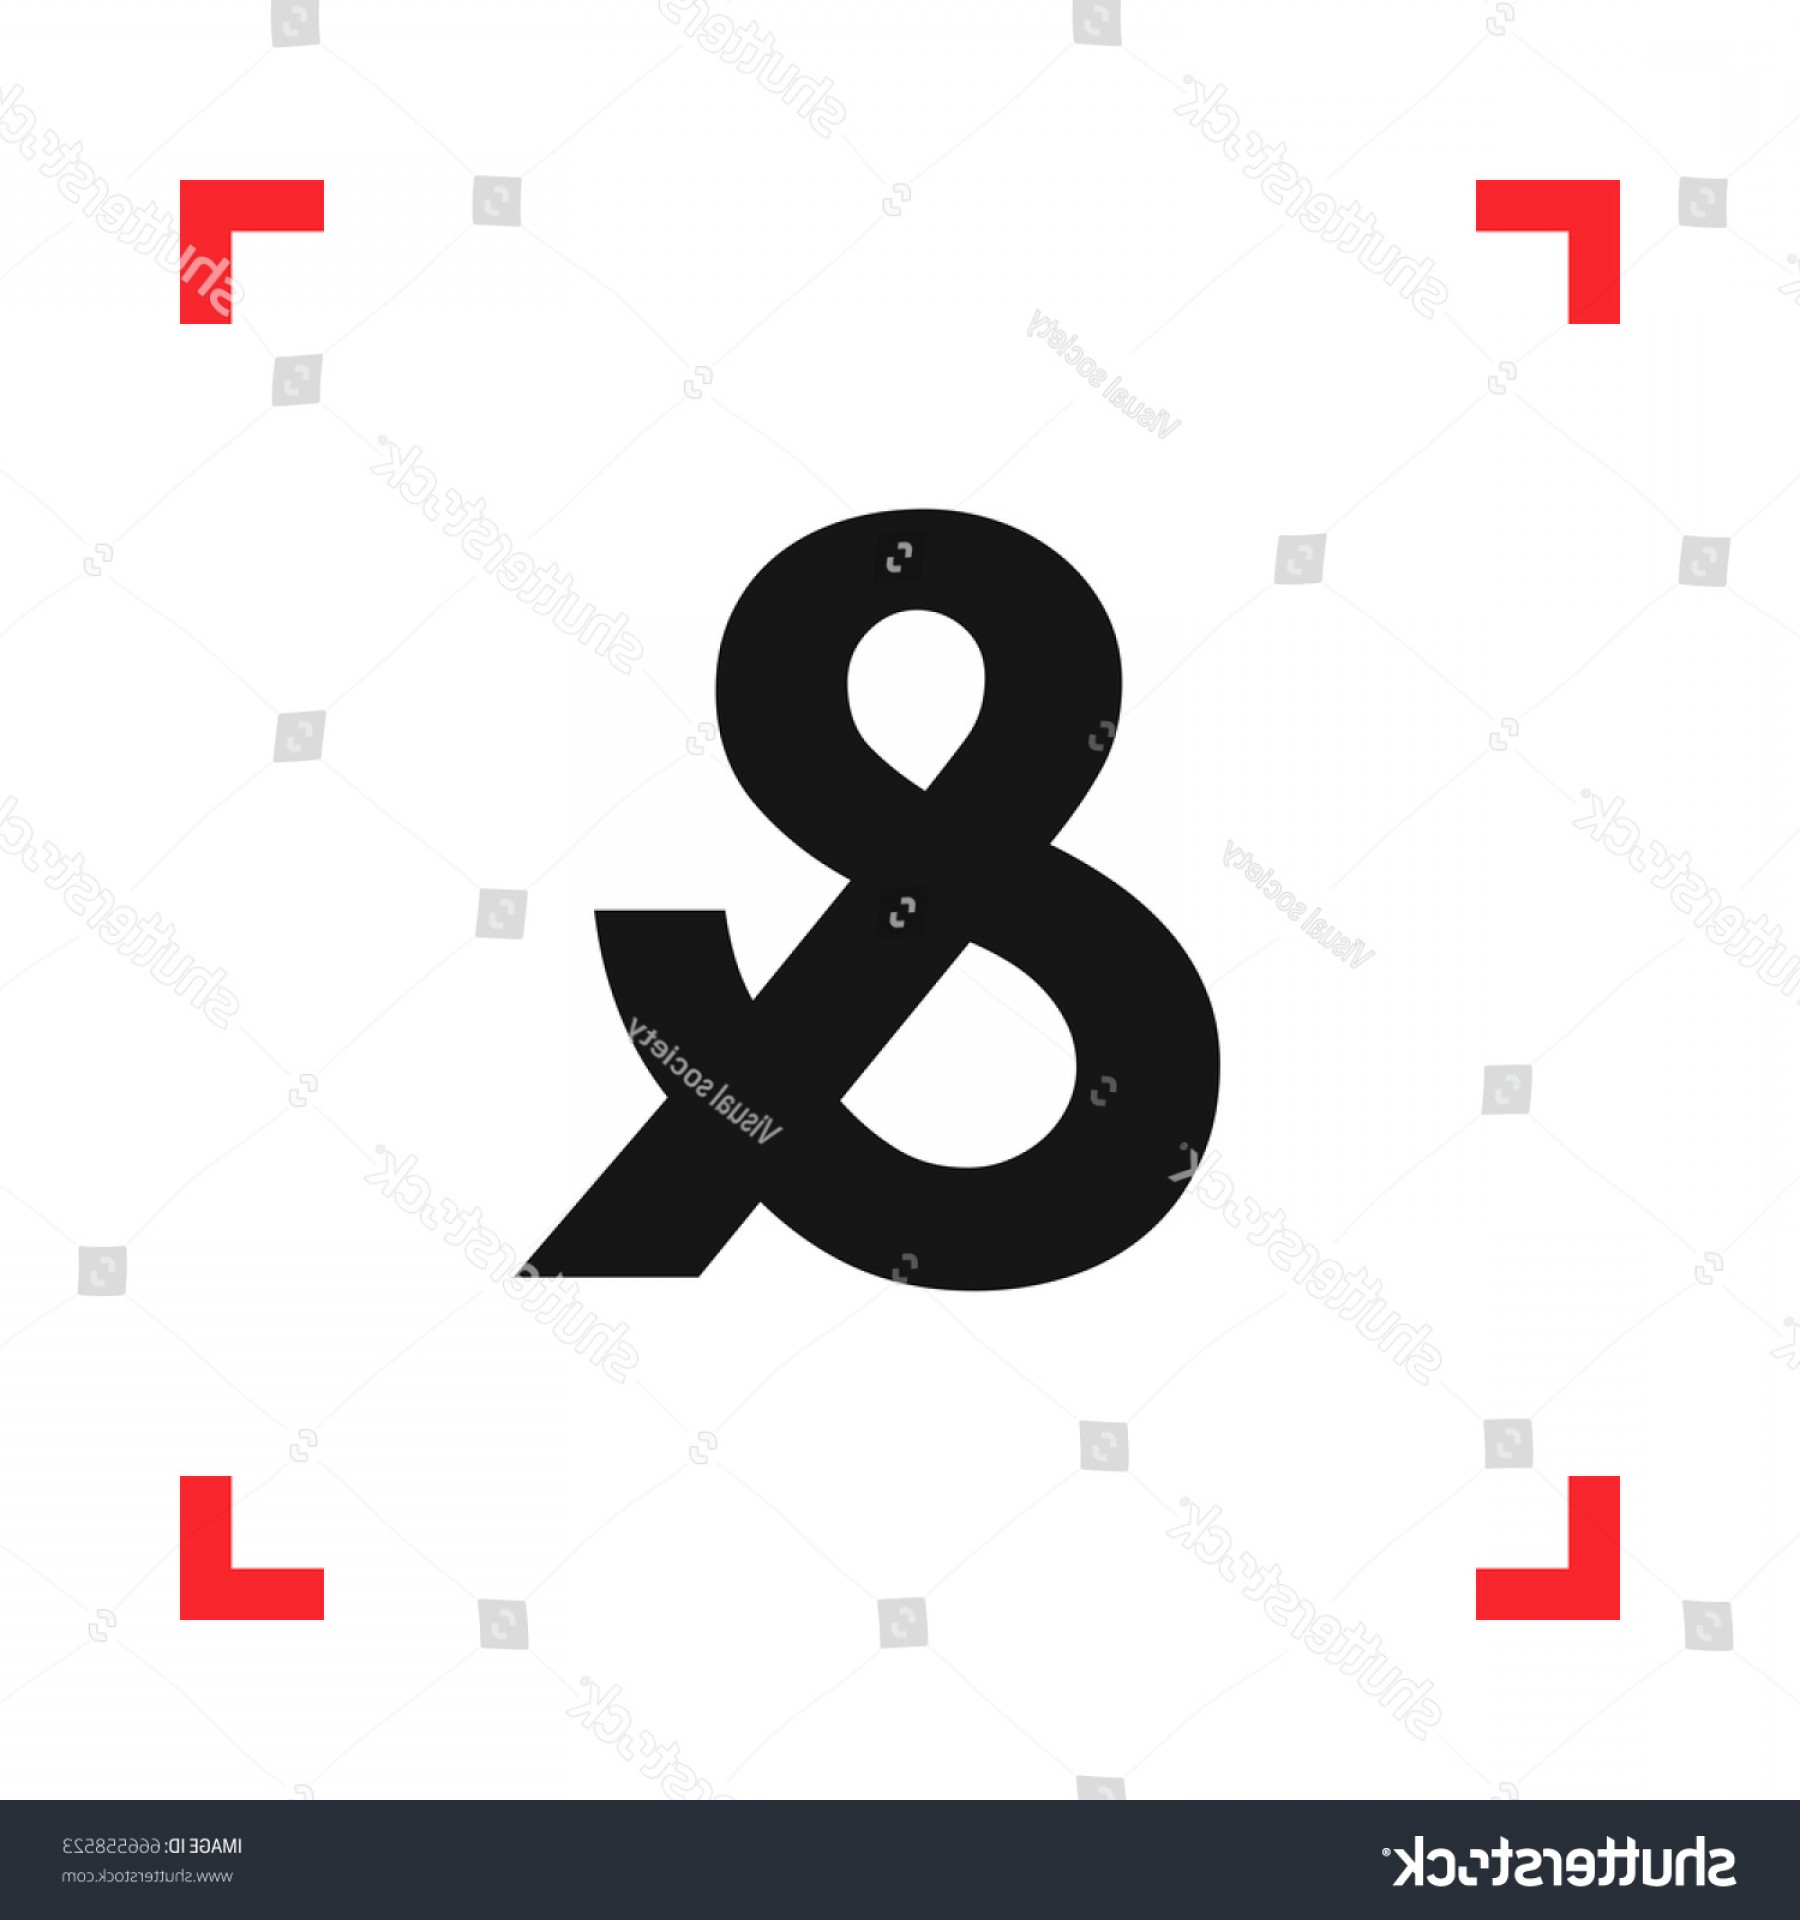 Ampersand Symbol Vector: Ampersand Symbol Red Viewfinder Isolated On